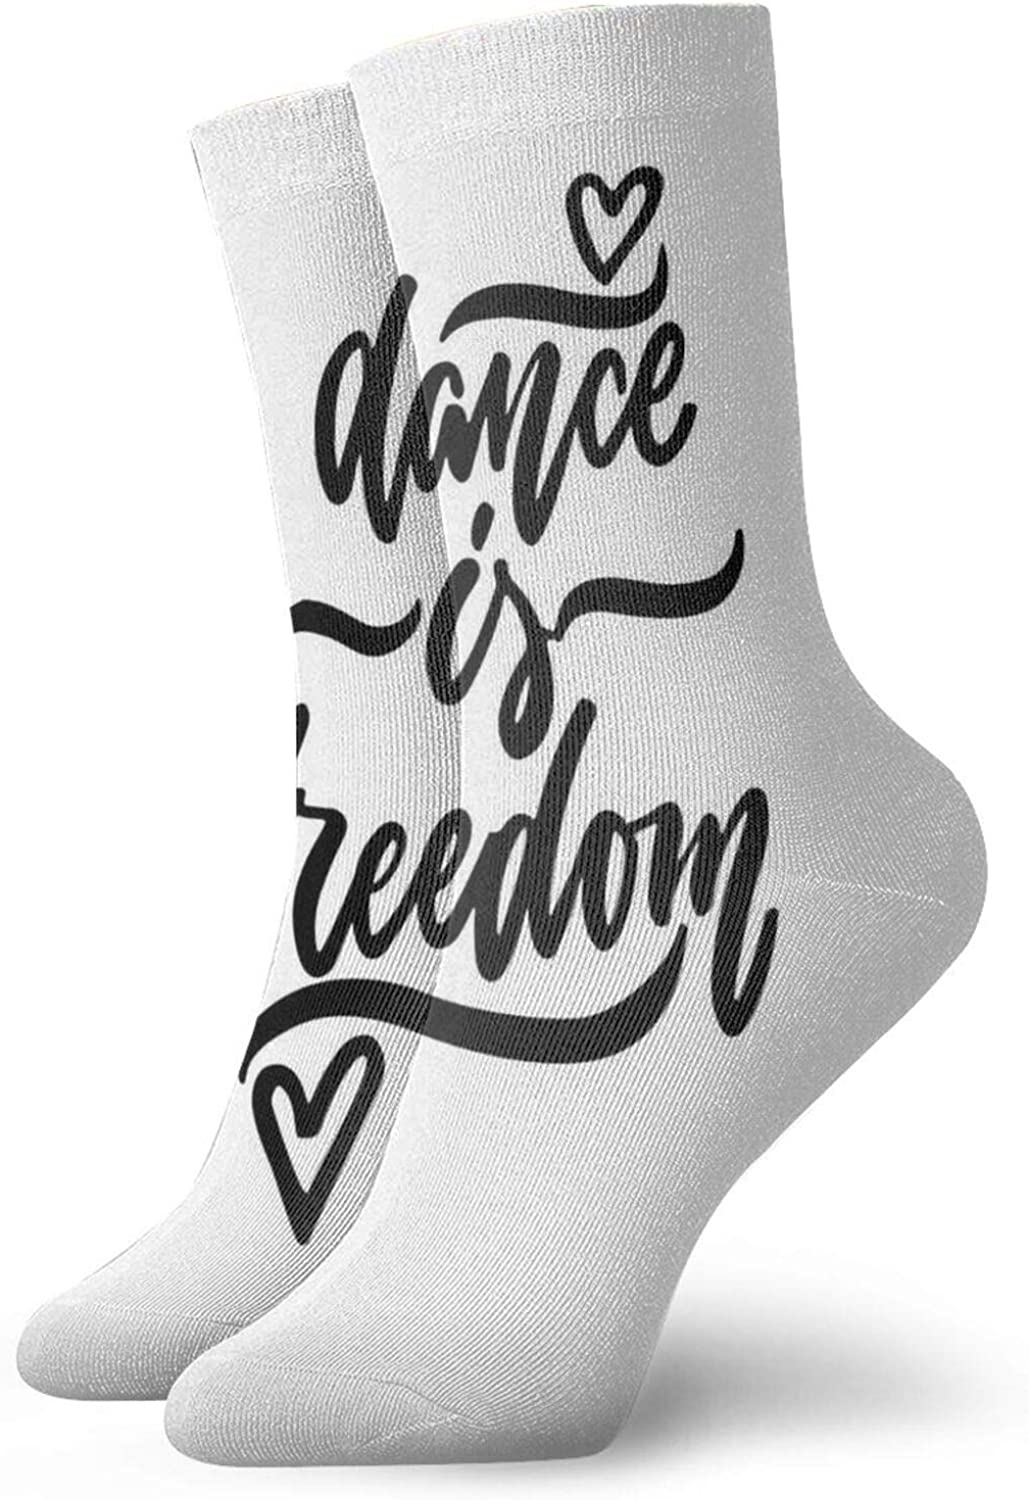 Compression High Socks-Dance Is Freedom Calligraphic Quote With Little Hearts Motivational Message Best for Running,Athletic,Hiking,Travel,Flight